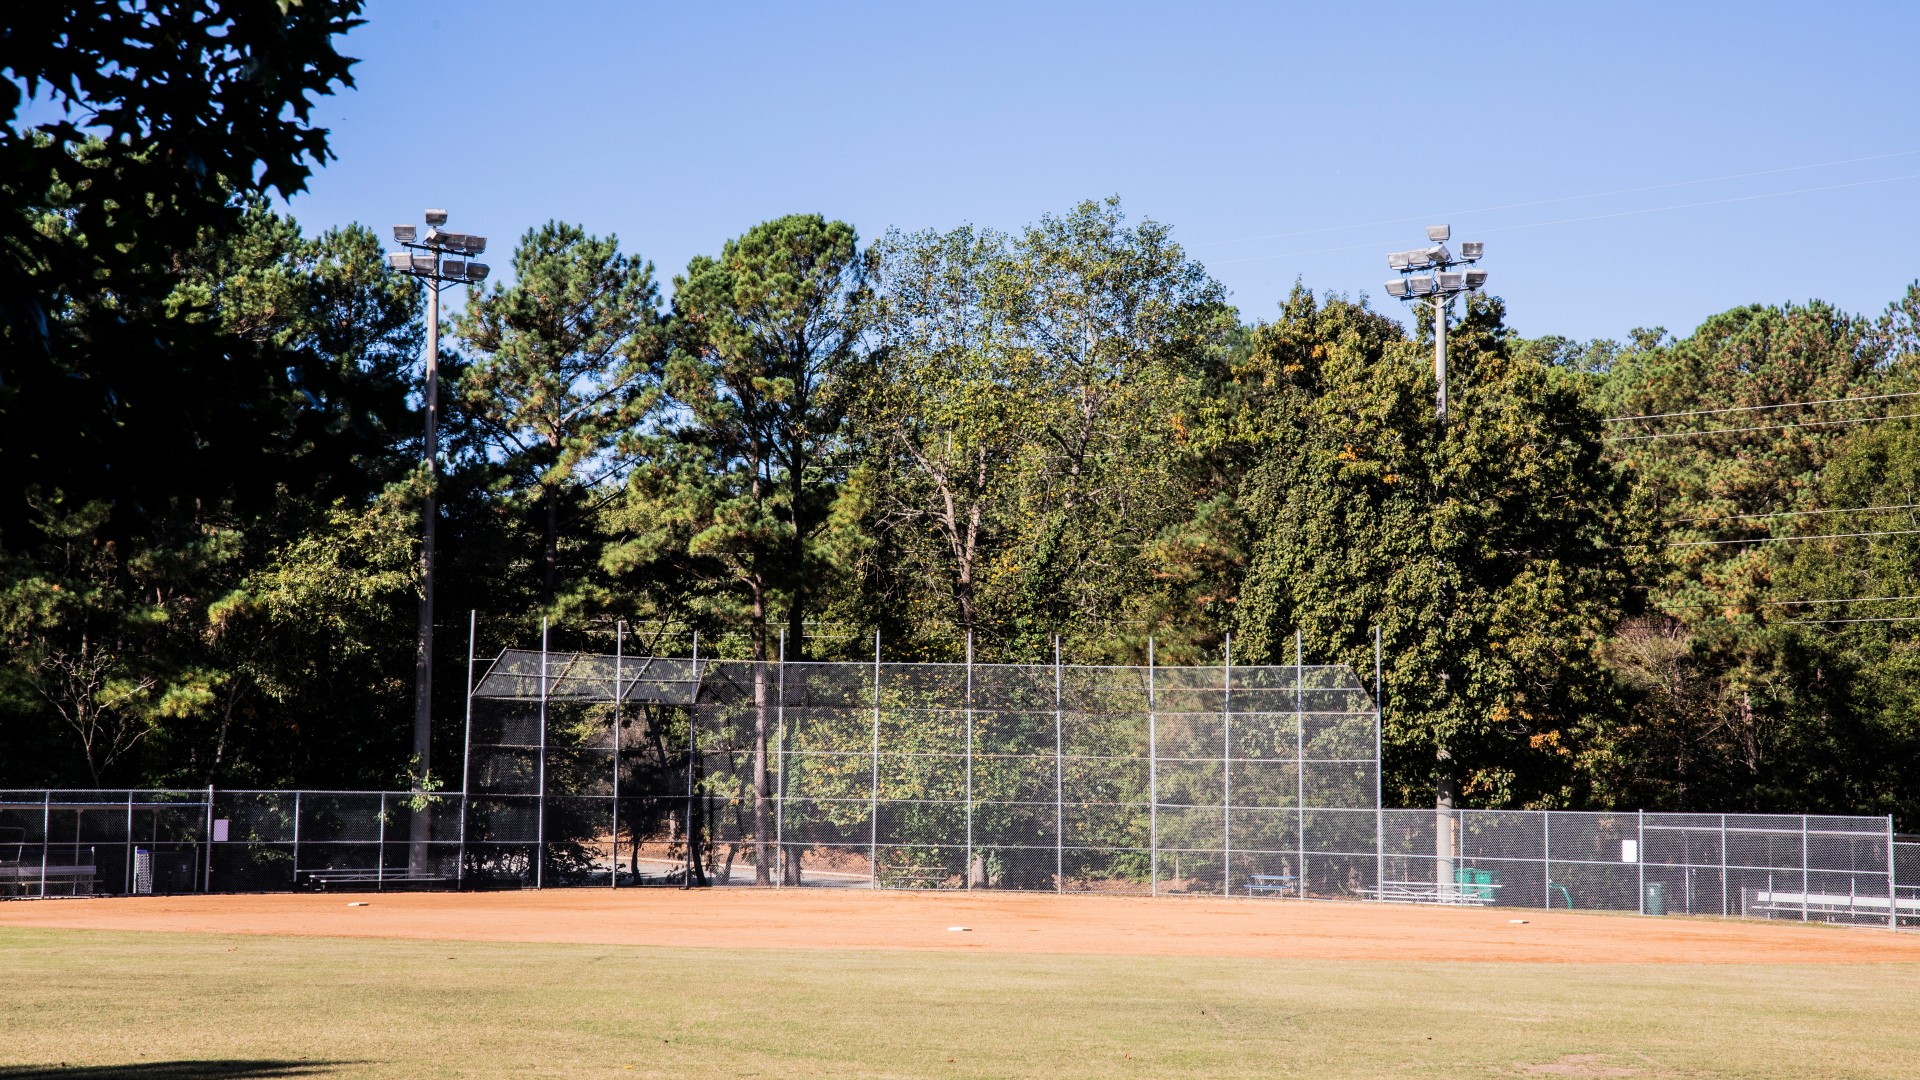 Outdoor softball field at Cedar Hills Park